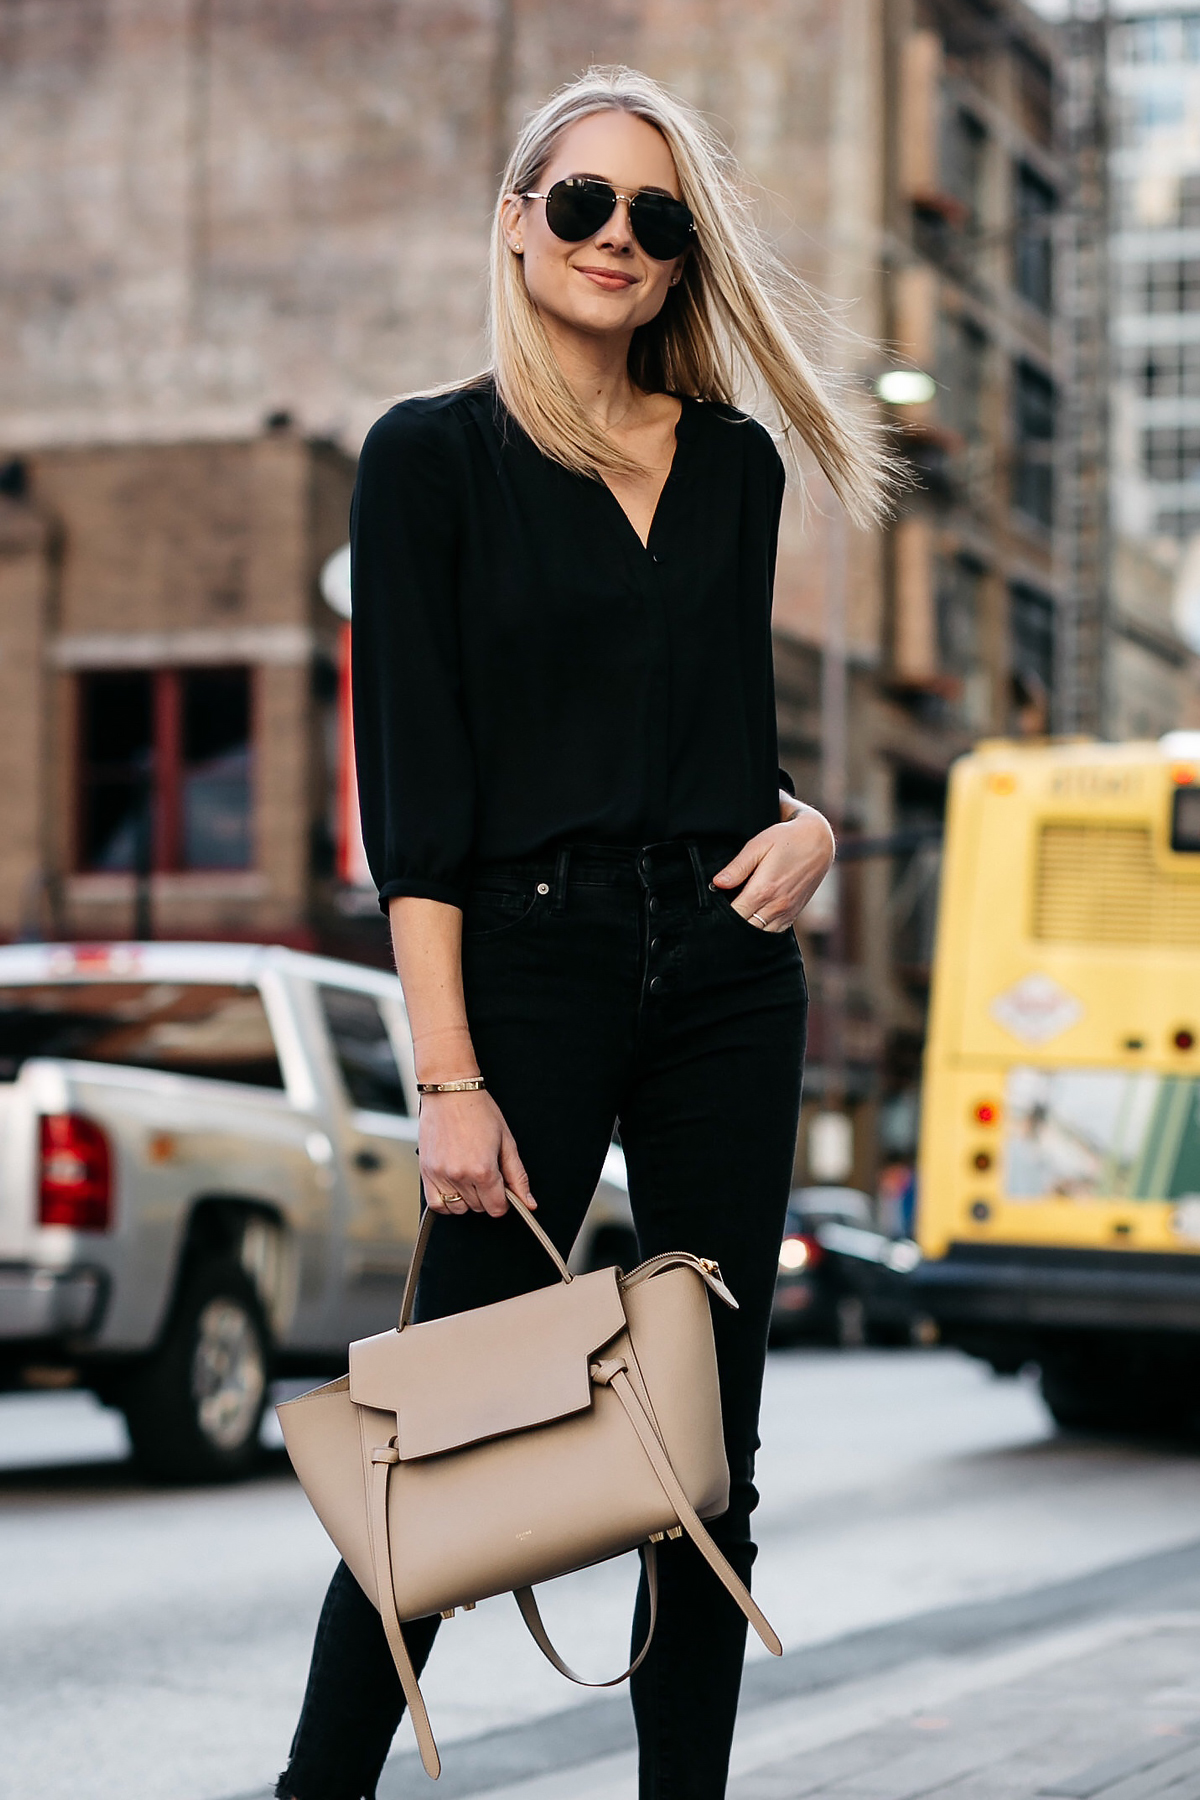 Blonde Woman Wearing Black Shirt Madewell Black Jeans Celine Belt Bag Celine Aviator Sunglasses Fashion Jackson Dallas Blogger Fashion Blogger Street Style